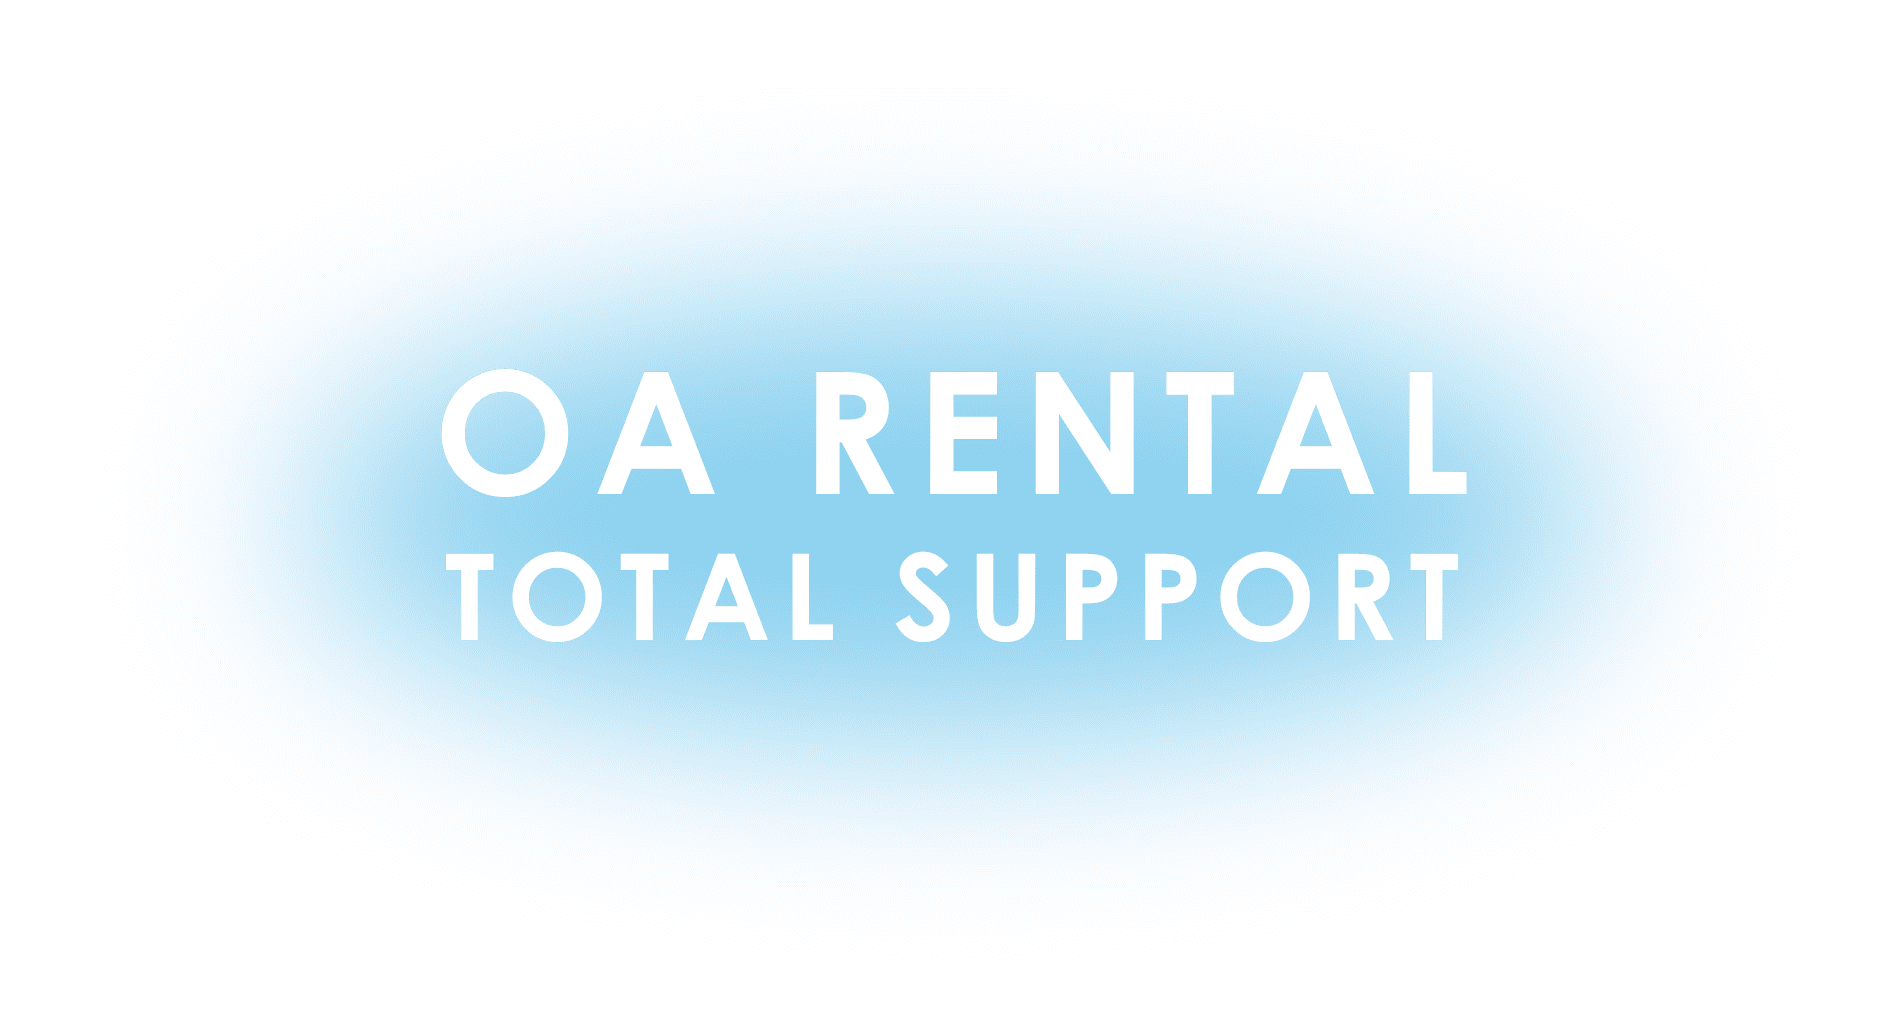 OA RENTAL TOTAL SUPPORT